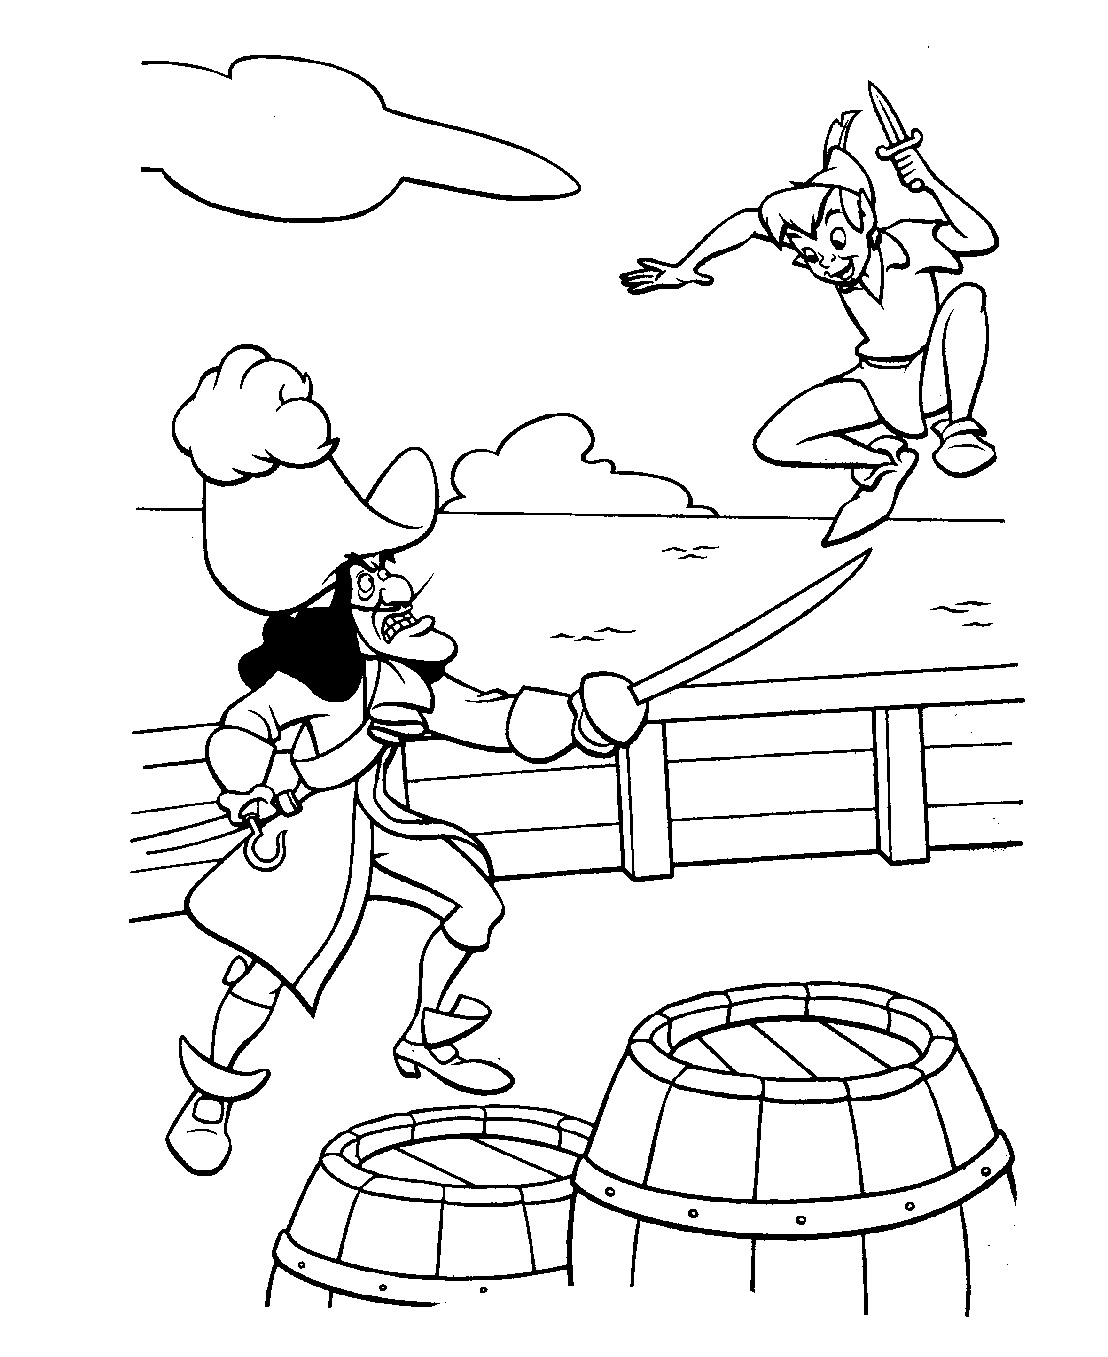 Peter pan coloring pages to print - Free Peter Pan Coloring Pages